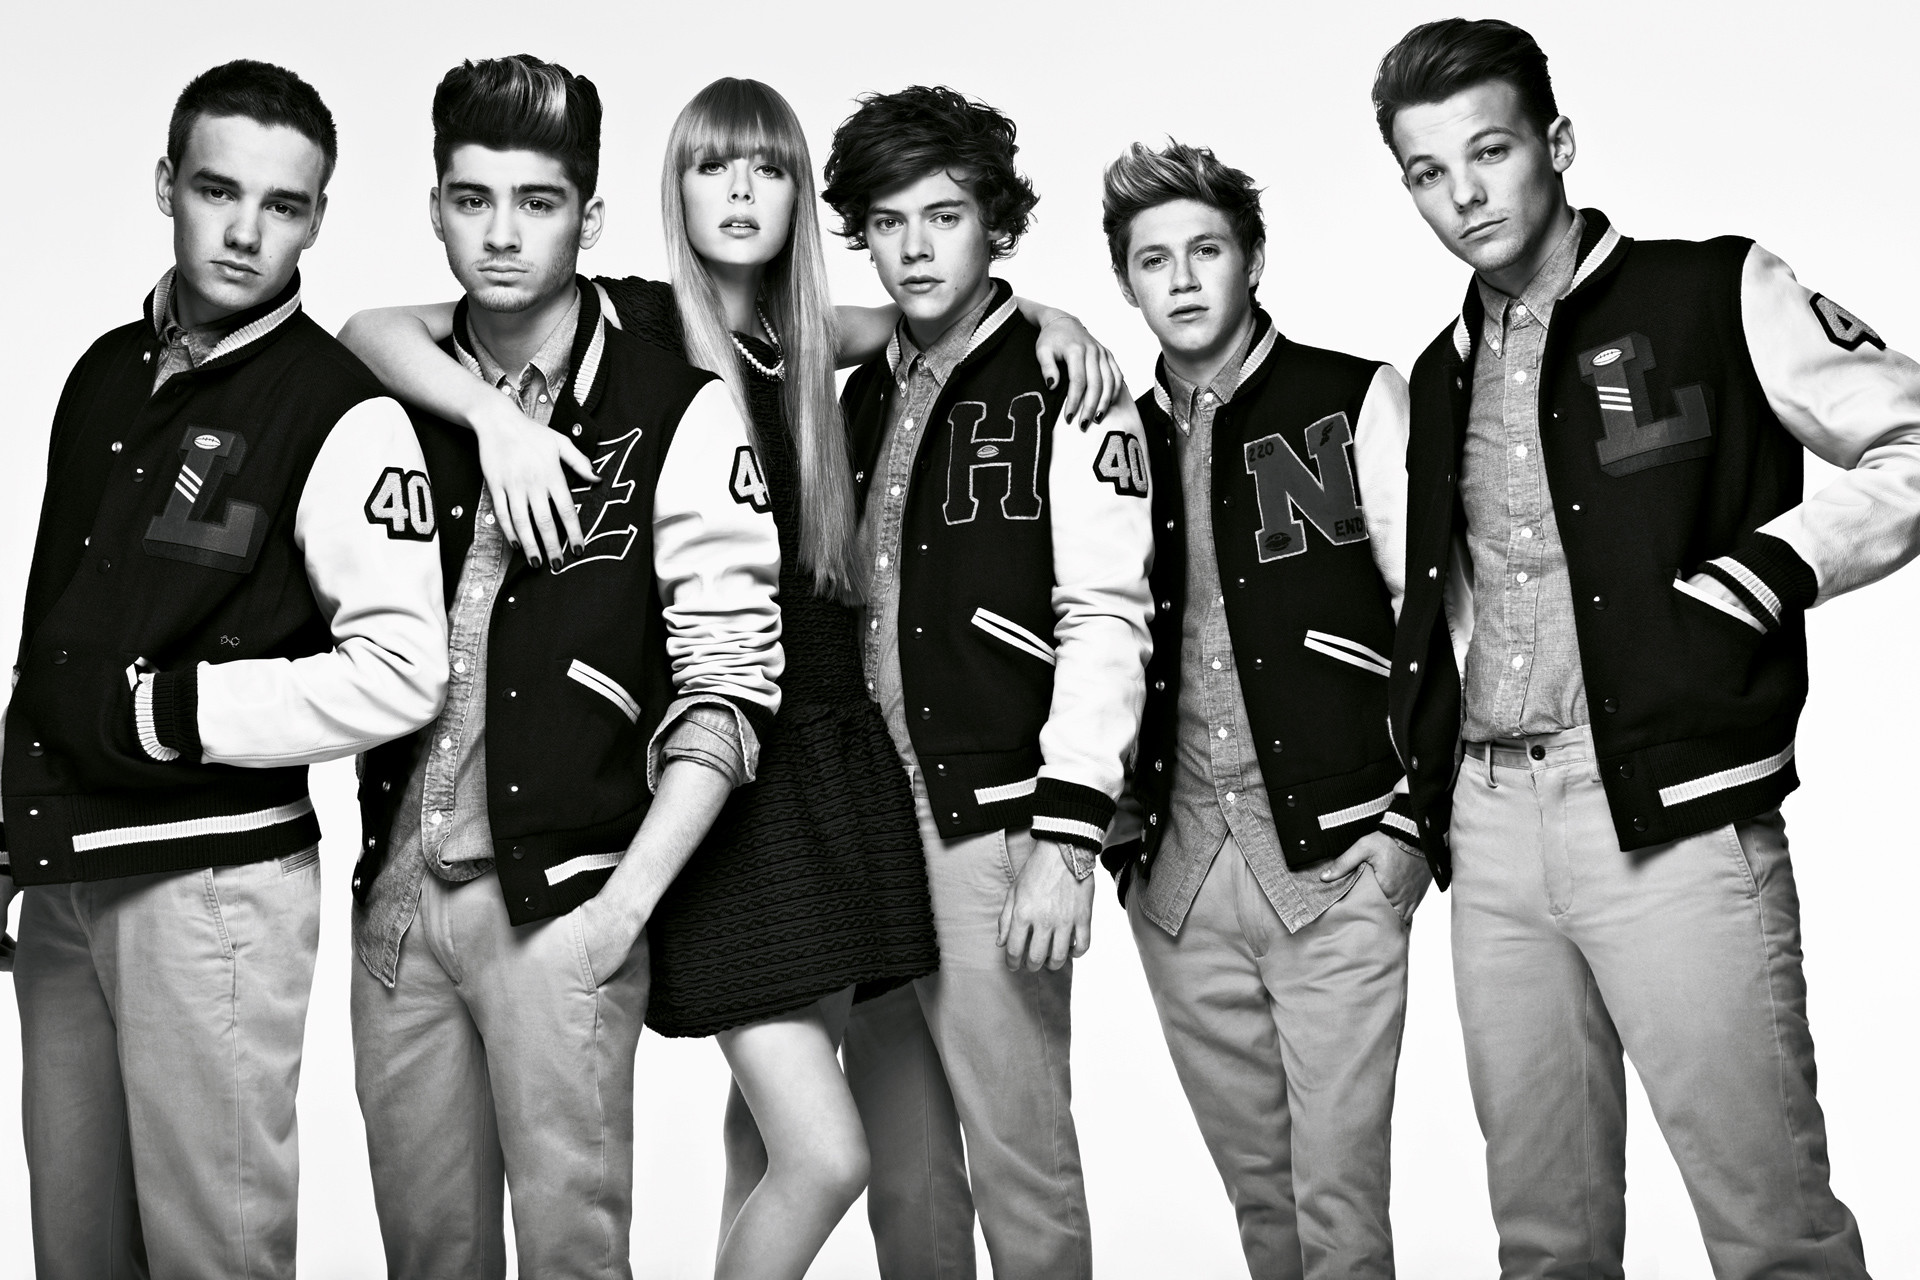 Download One Direction Photos Wallpaper Widescreen #s58ckl px  900.56 KB Celebrities One Direction